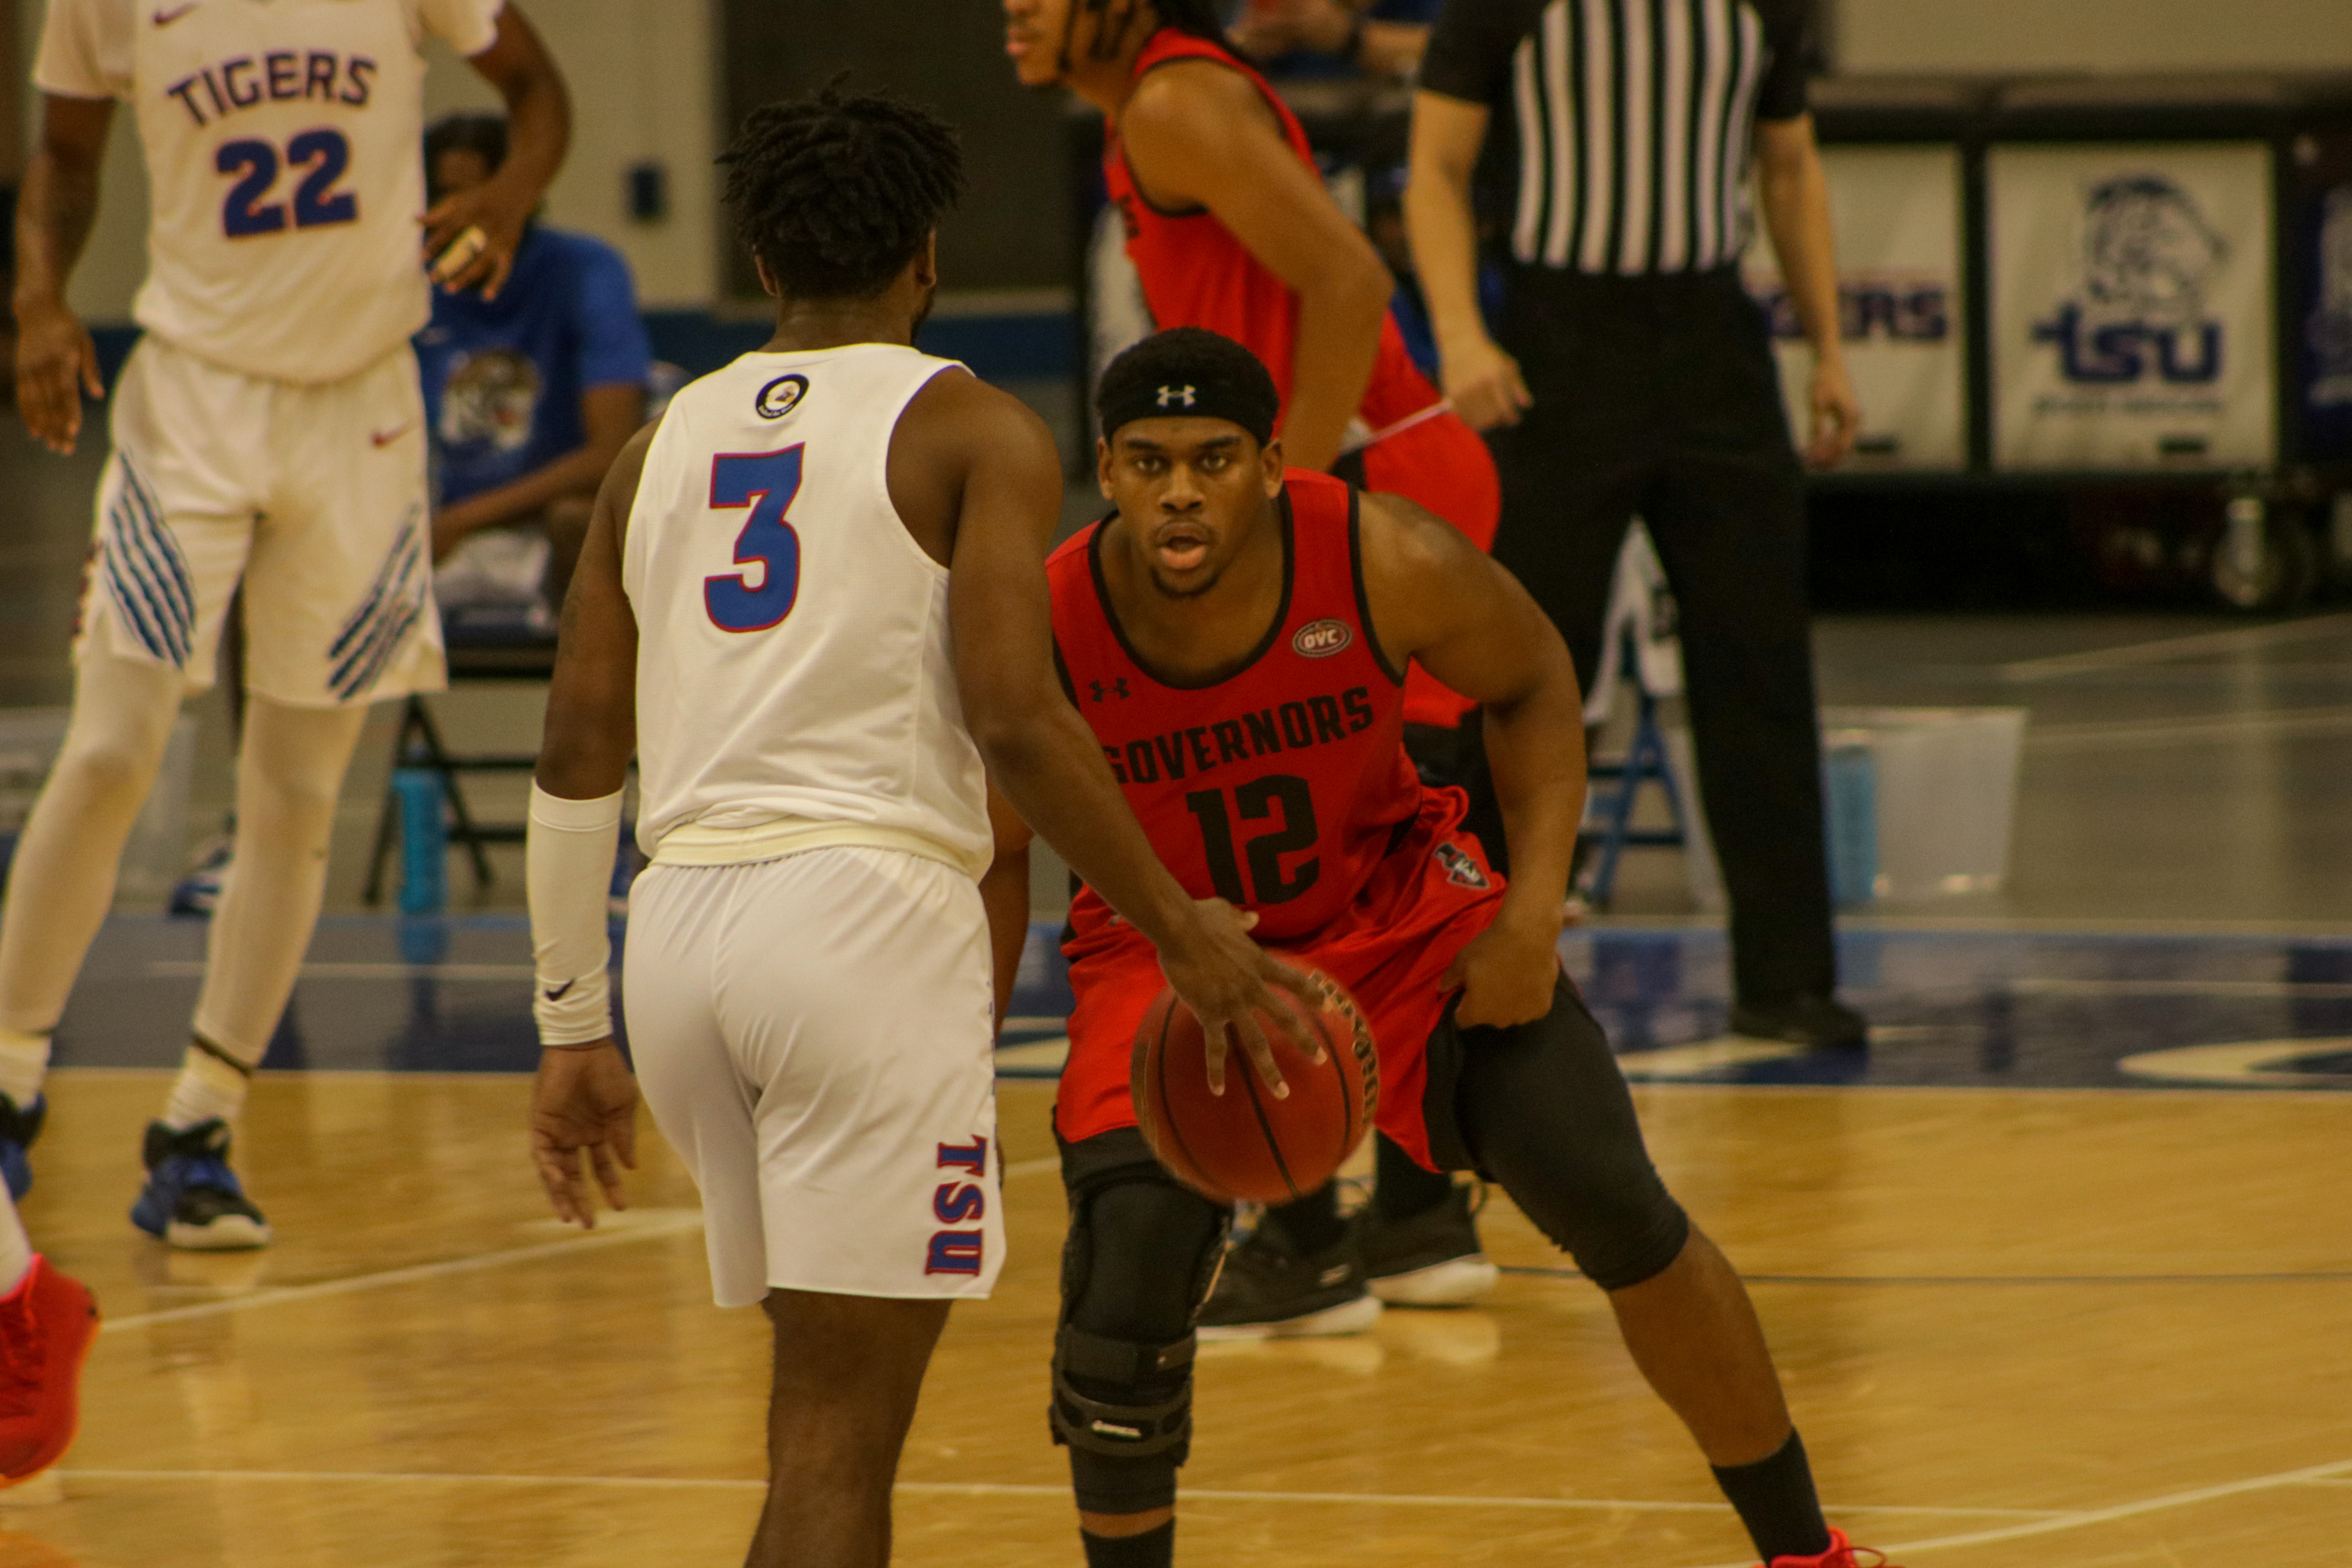 Reginald Gee guards Amorey Womack during the Governors 68-59 win over Tennessee State. BLAINE KELLAR | THE ALL STATE